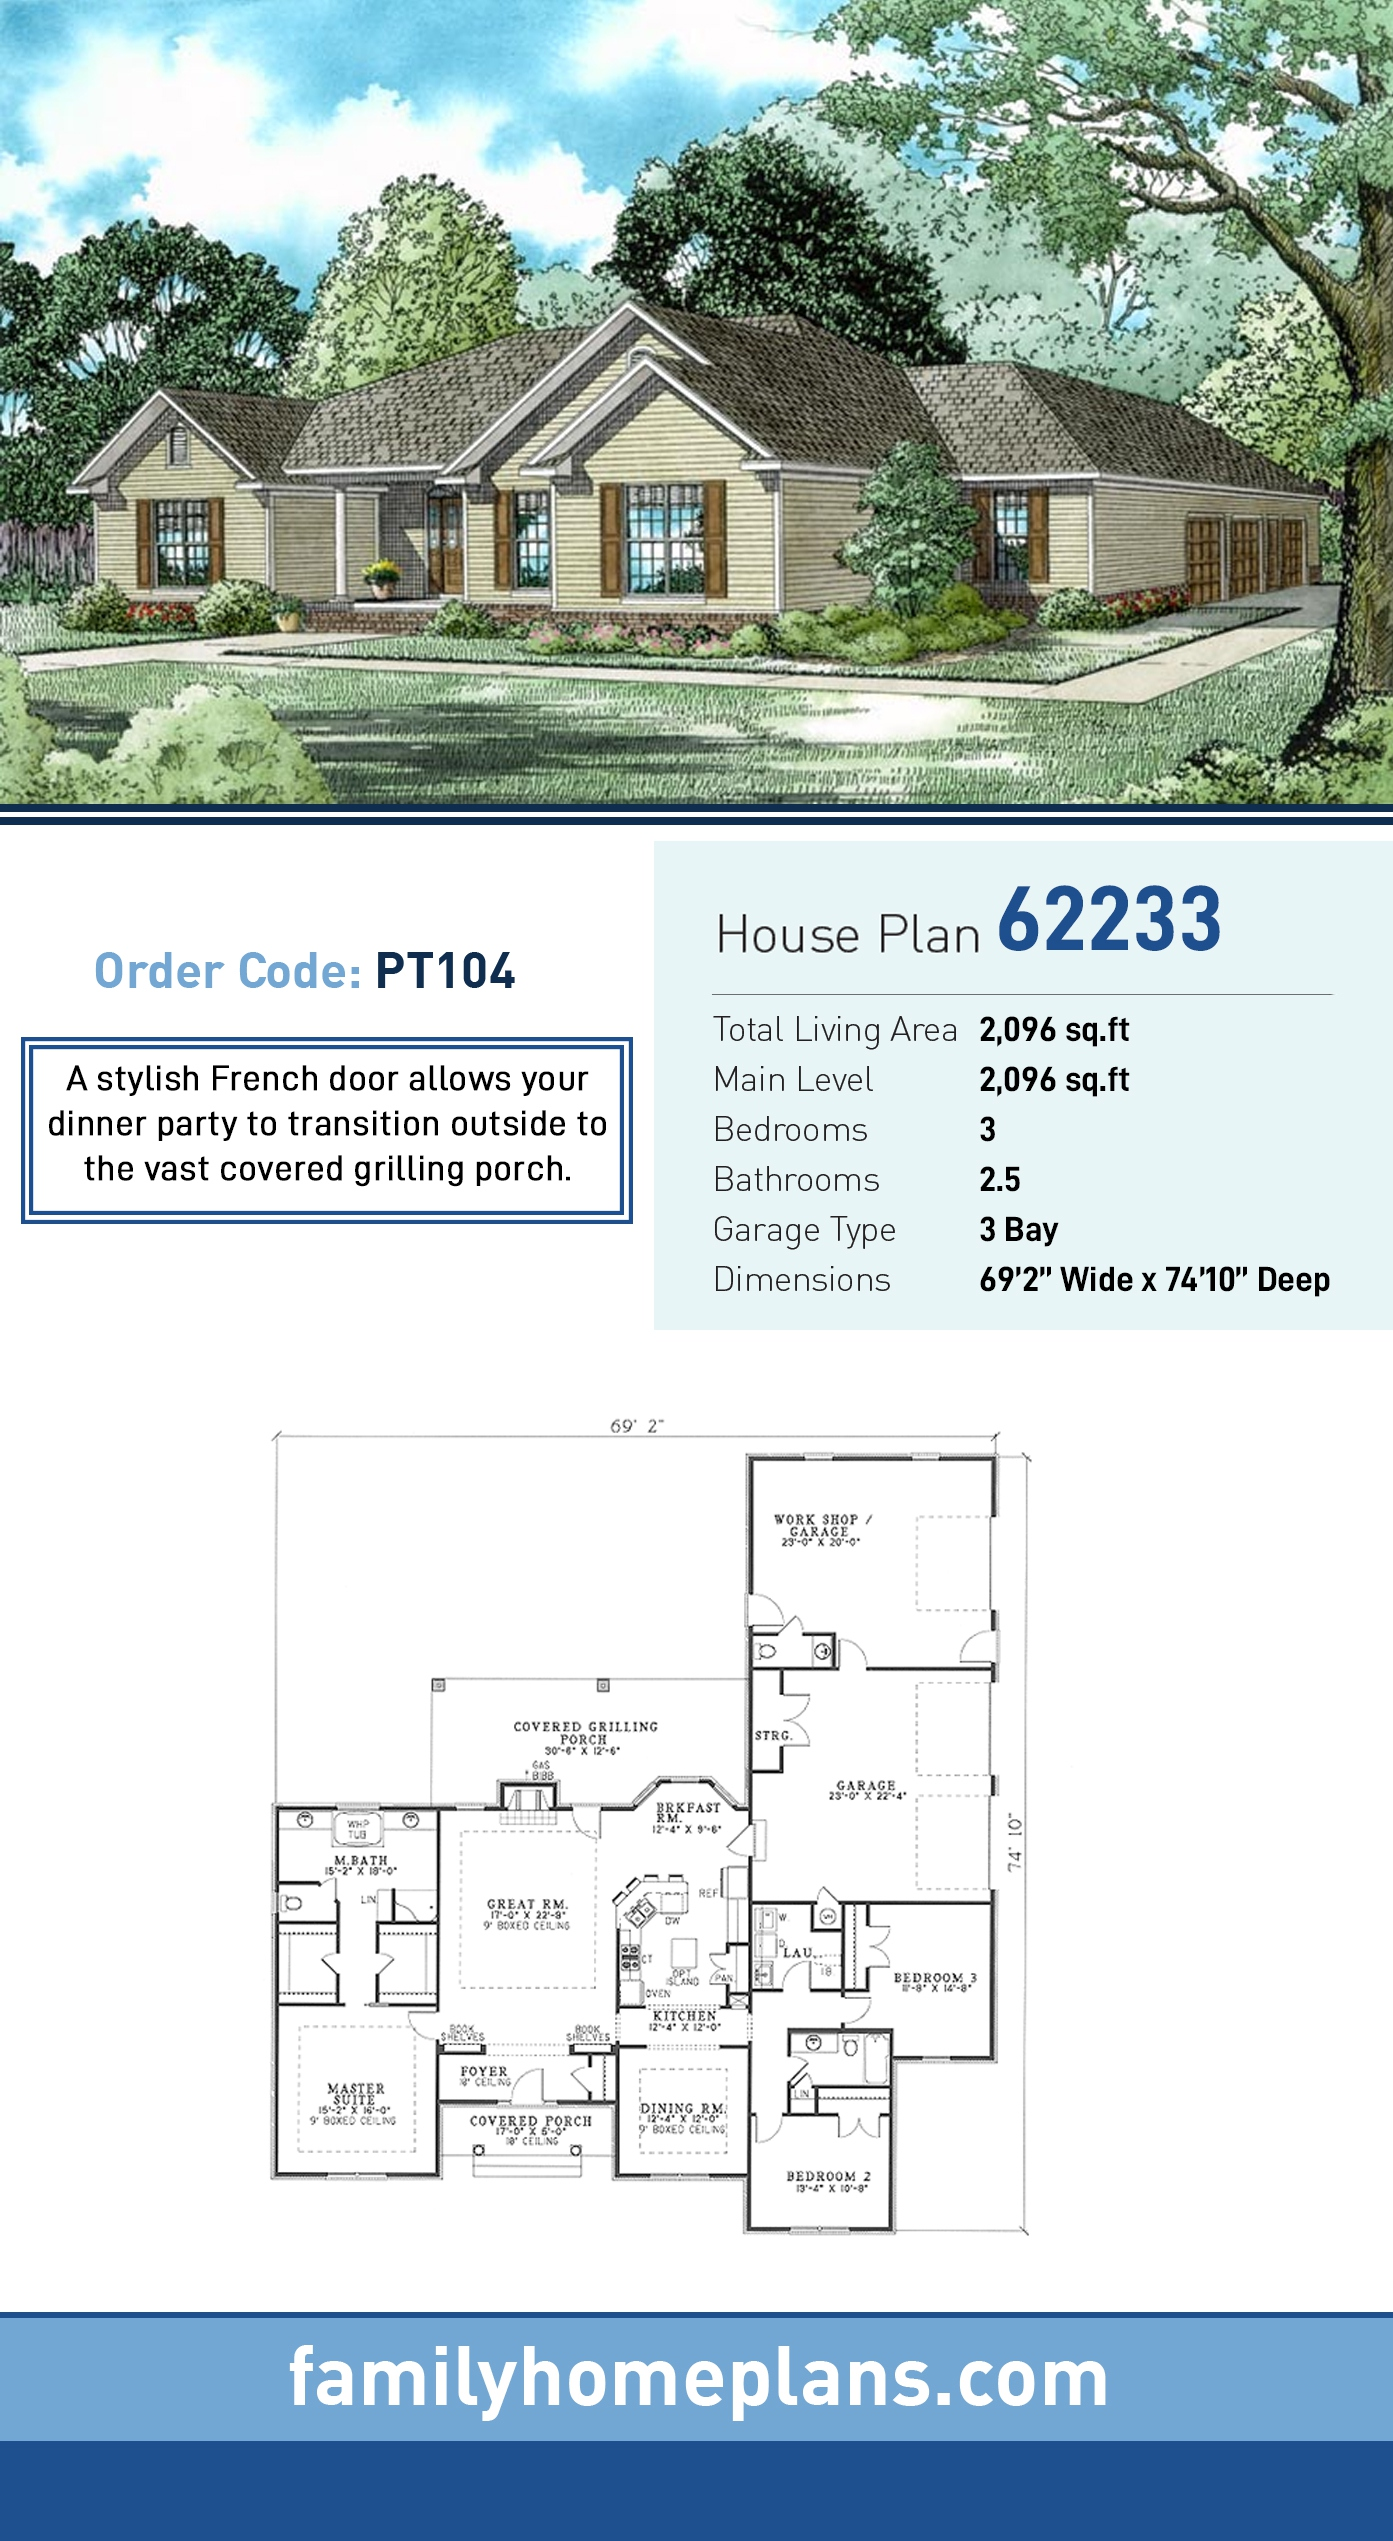 Traditional House Plan 62233 with 3 Beds, 3 Baths, 3 Car Garage